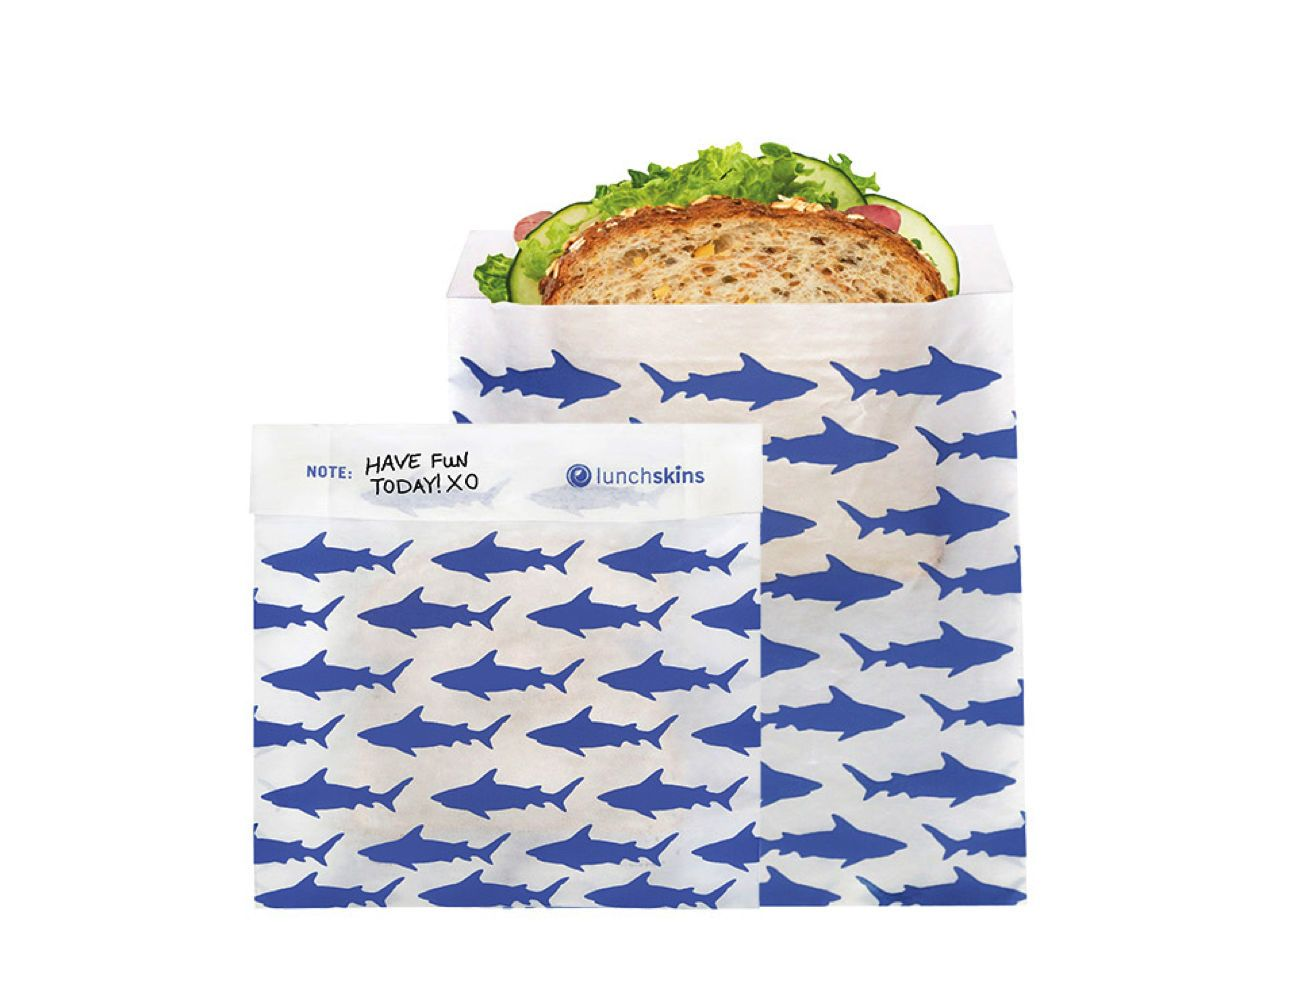 LunchSkins Recyclable and Resealable Sandwich Bags